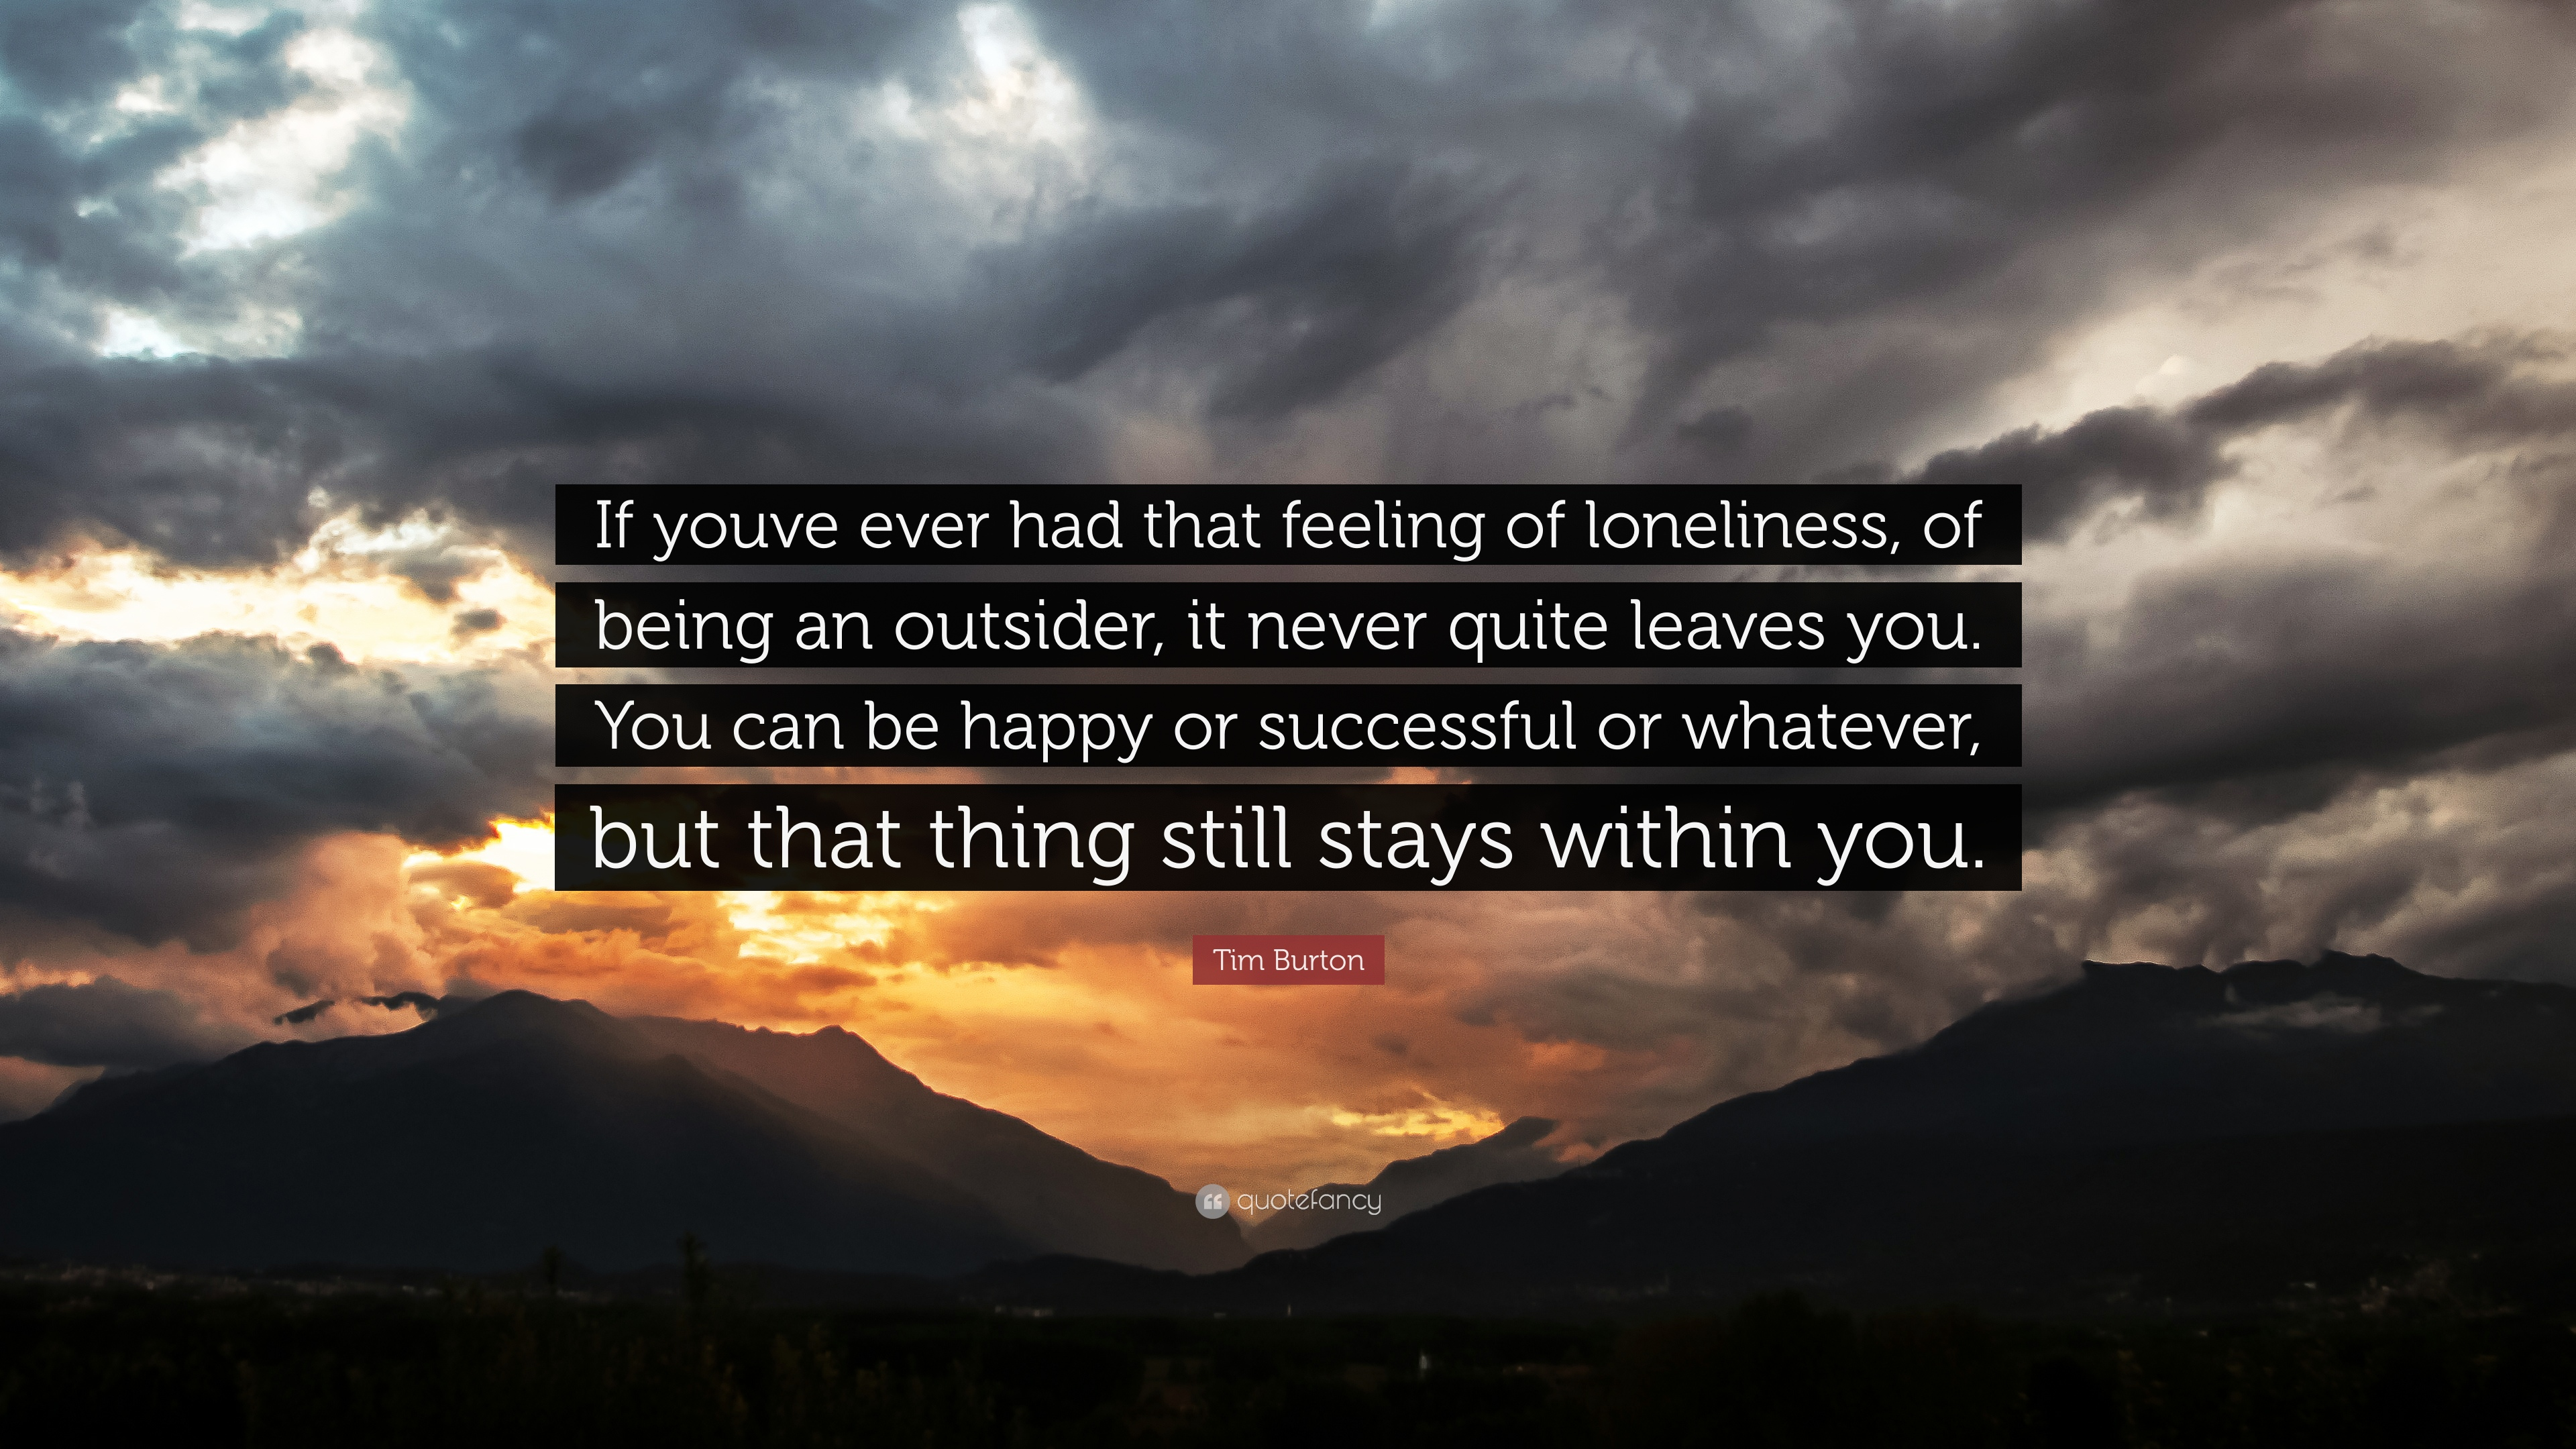 Tim Burton Quote If Youve Ever Had That Feeling Of Loneliness Of